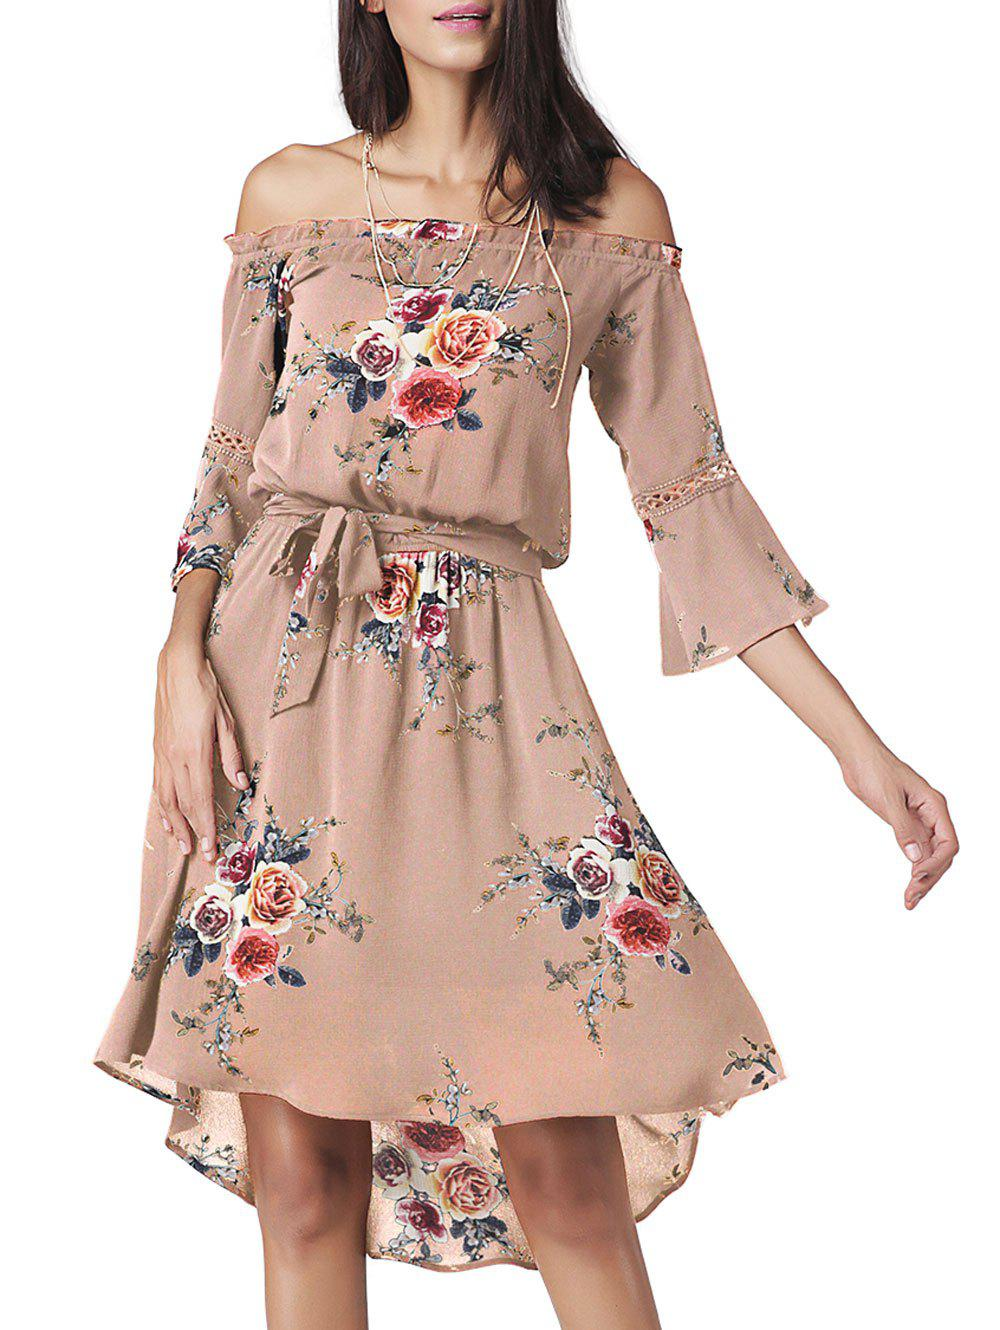 Floral Chiffon Off The Shoulder Midi Dress sweet off the shoulder floral dress for women